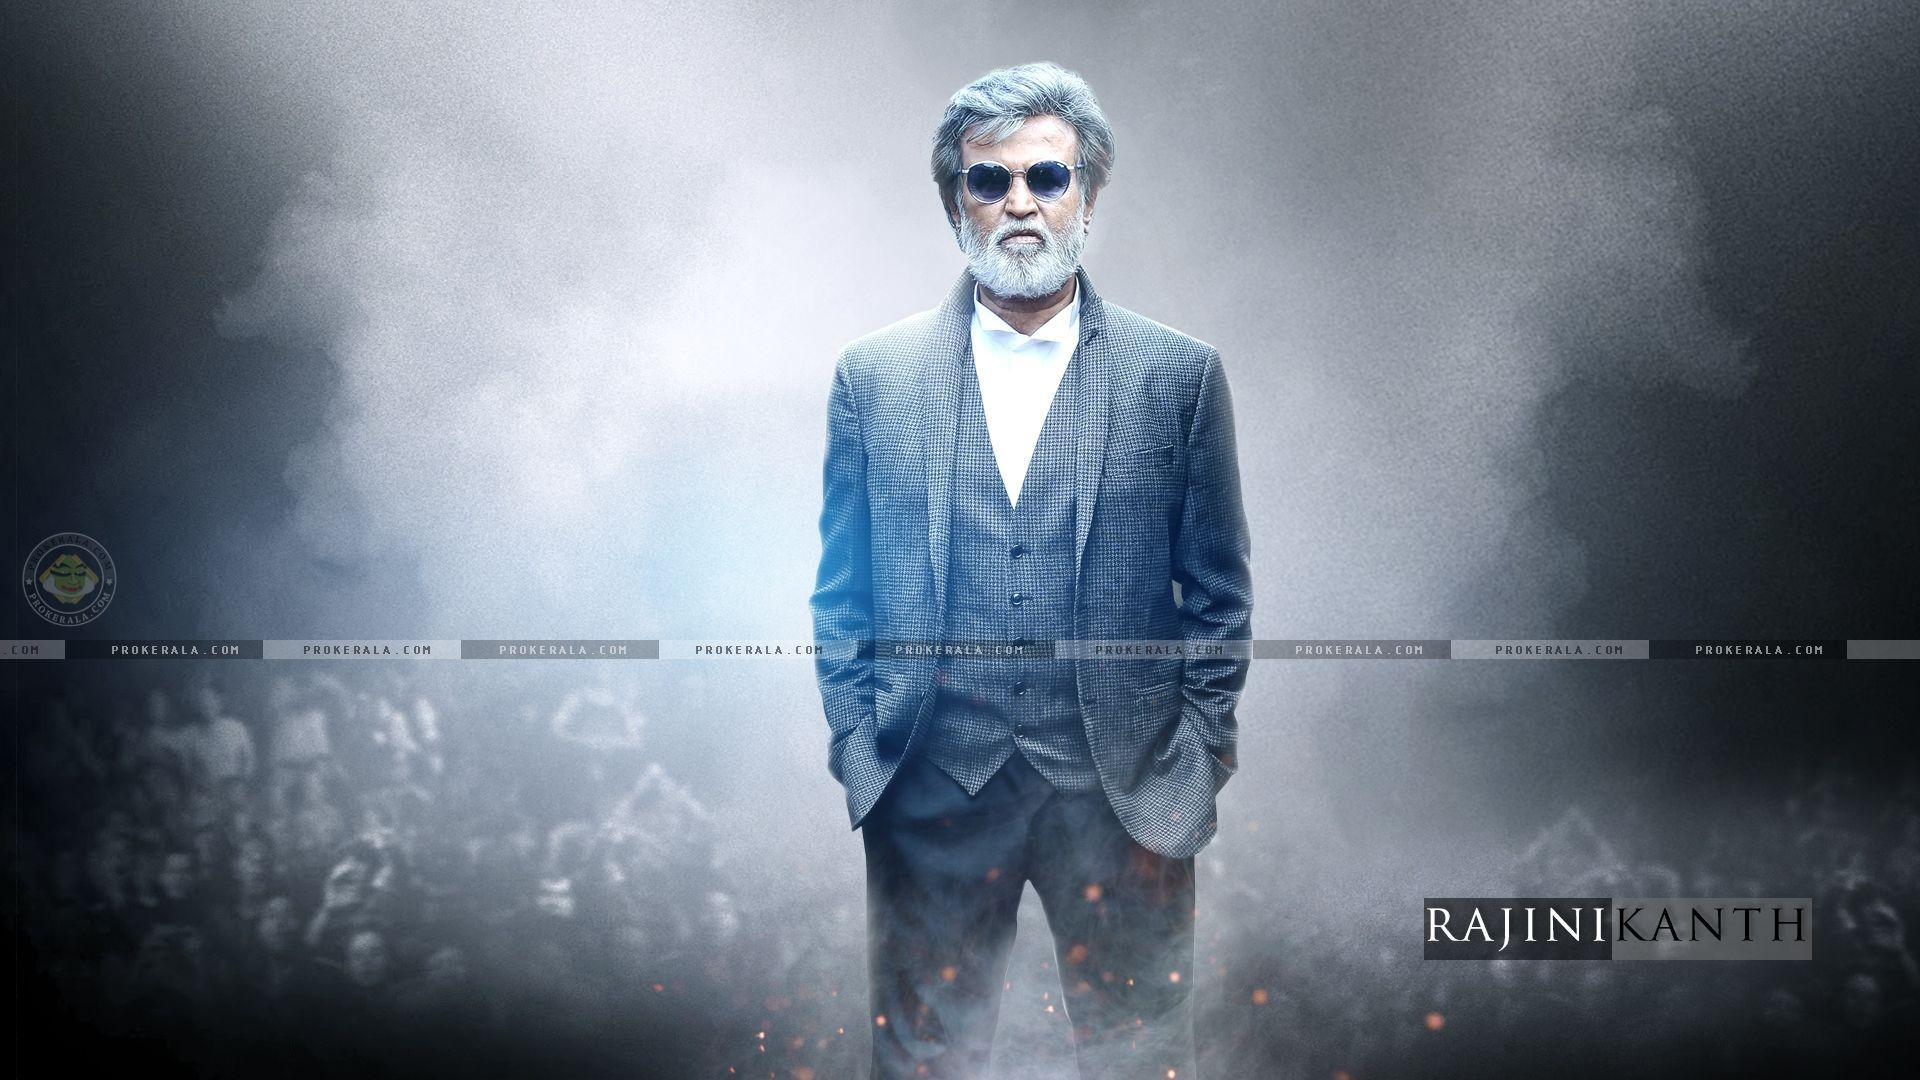 Megastar Rajinikanth New Movie Kabali Wallpapers Wallpaper # 2